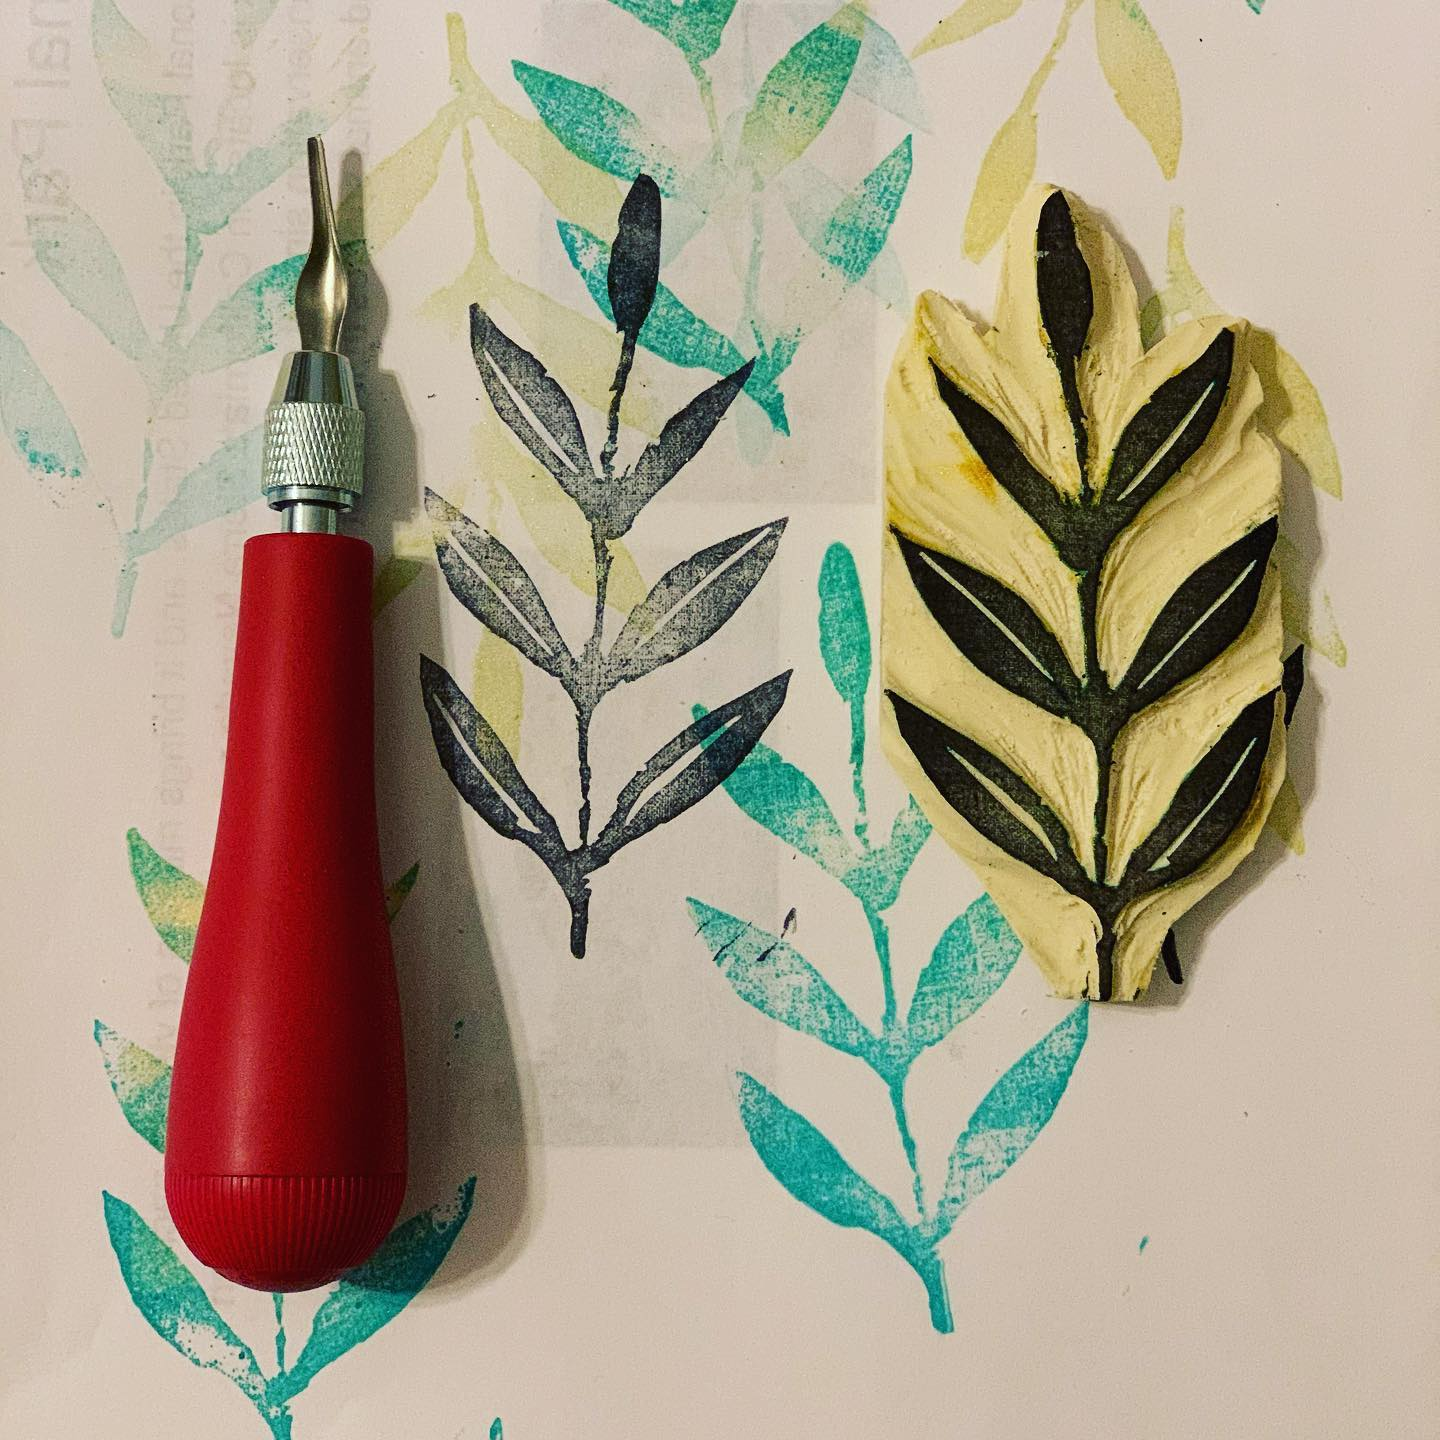 I have always enjoyed stamping in my art journals but never really made my own, here are some leafy impressions...